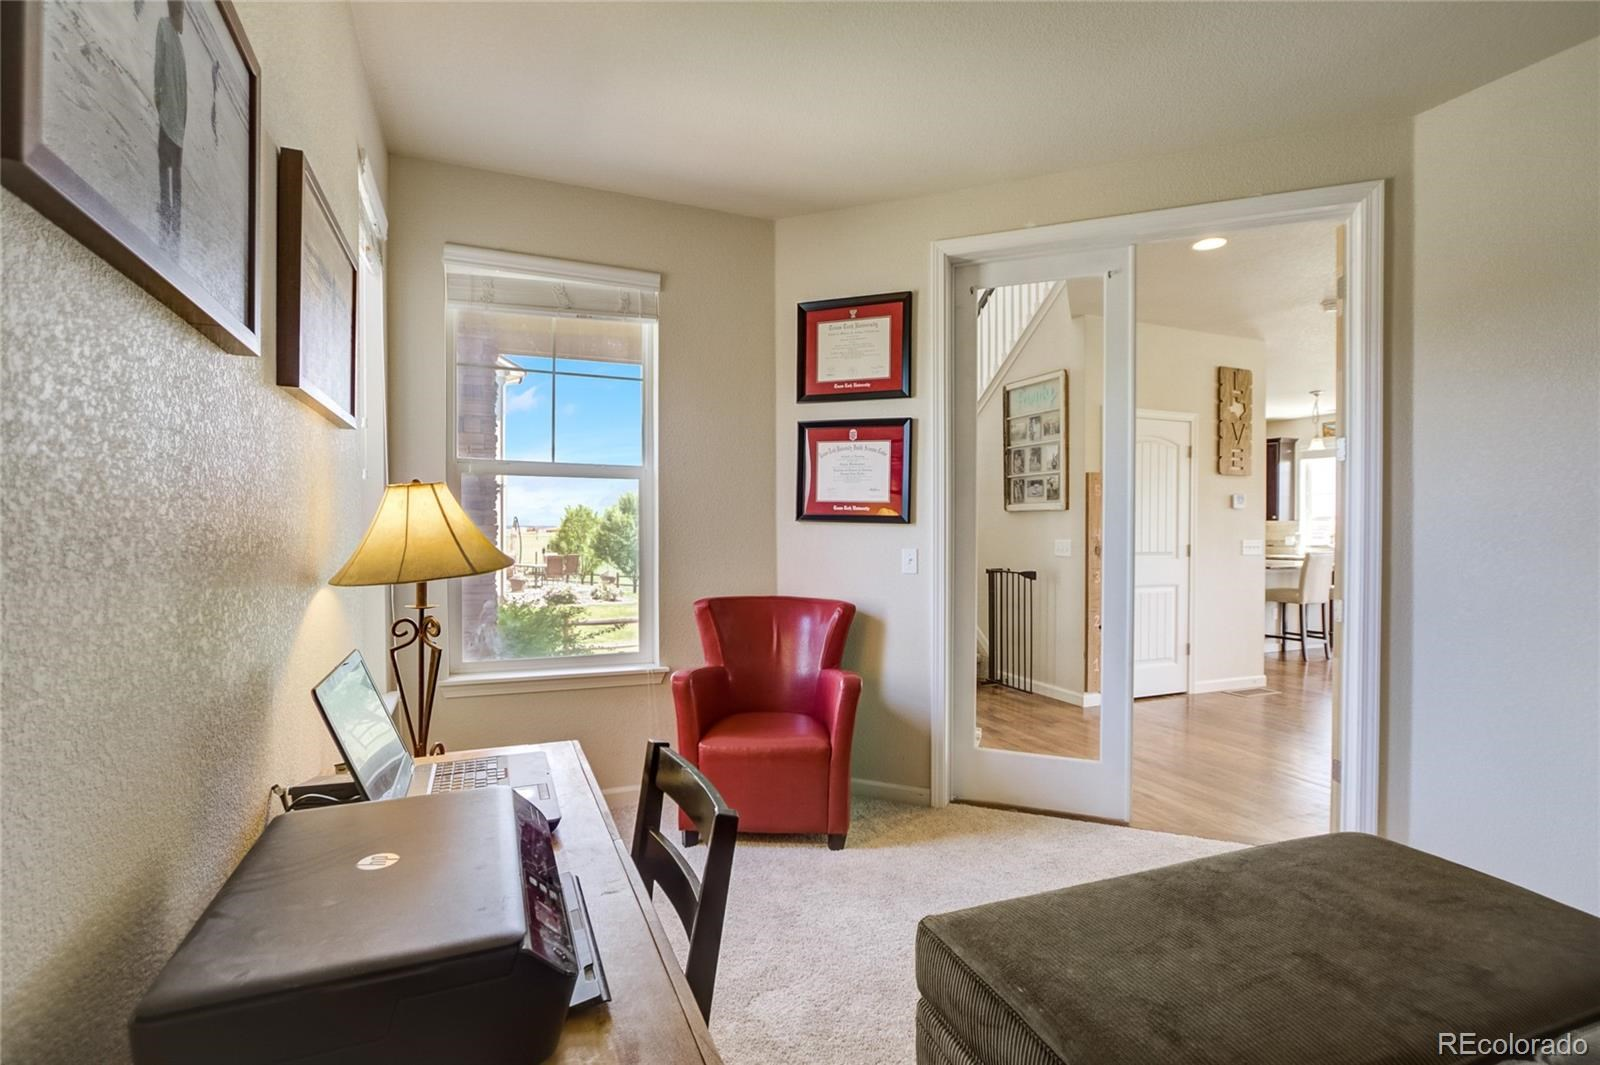 MLS# 8165557 - 12 - 5734 Pineview Court, Windsor, CO 80550